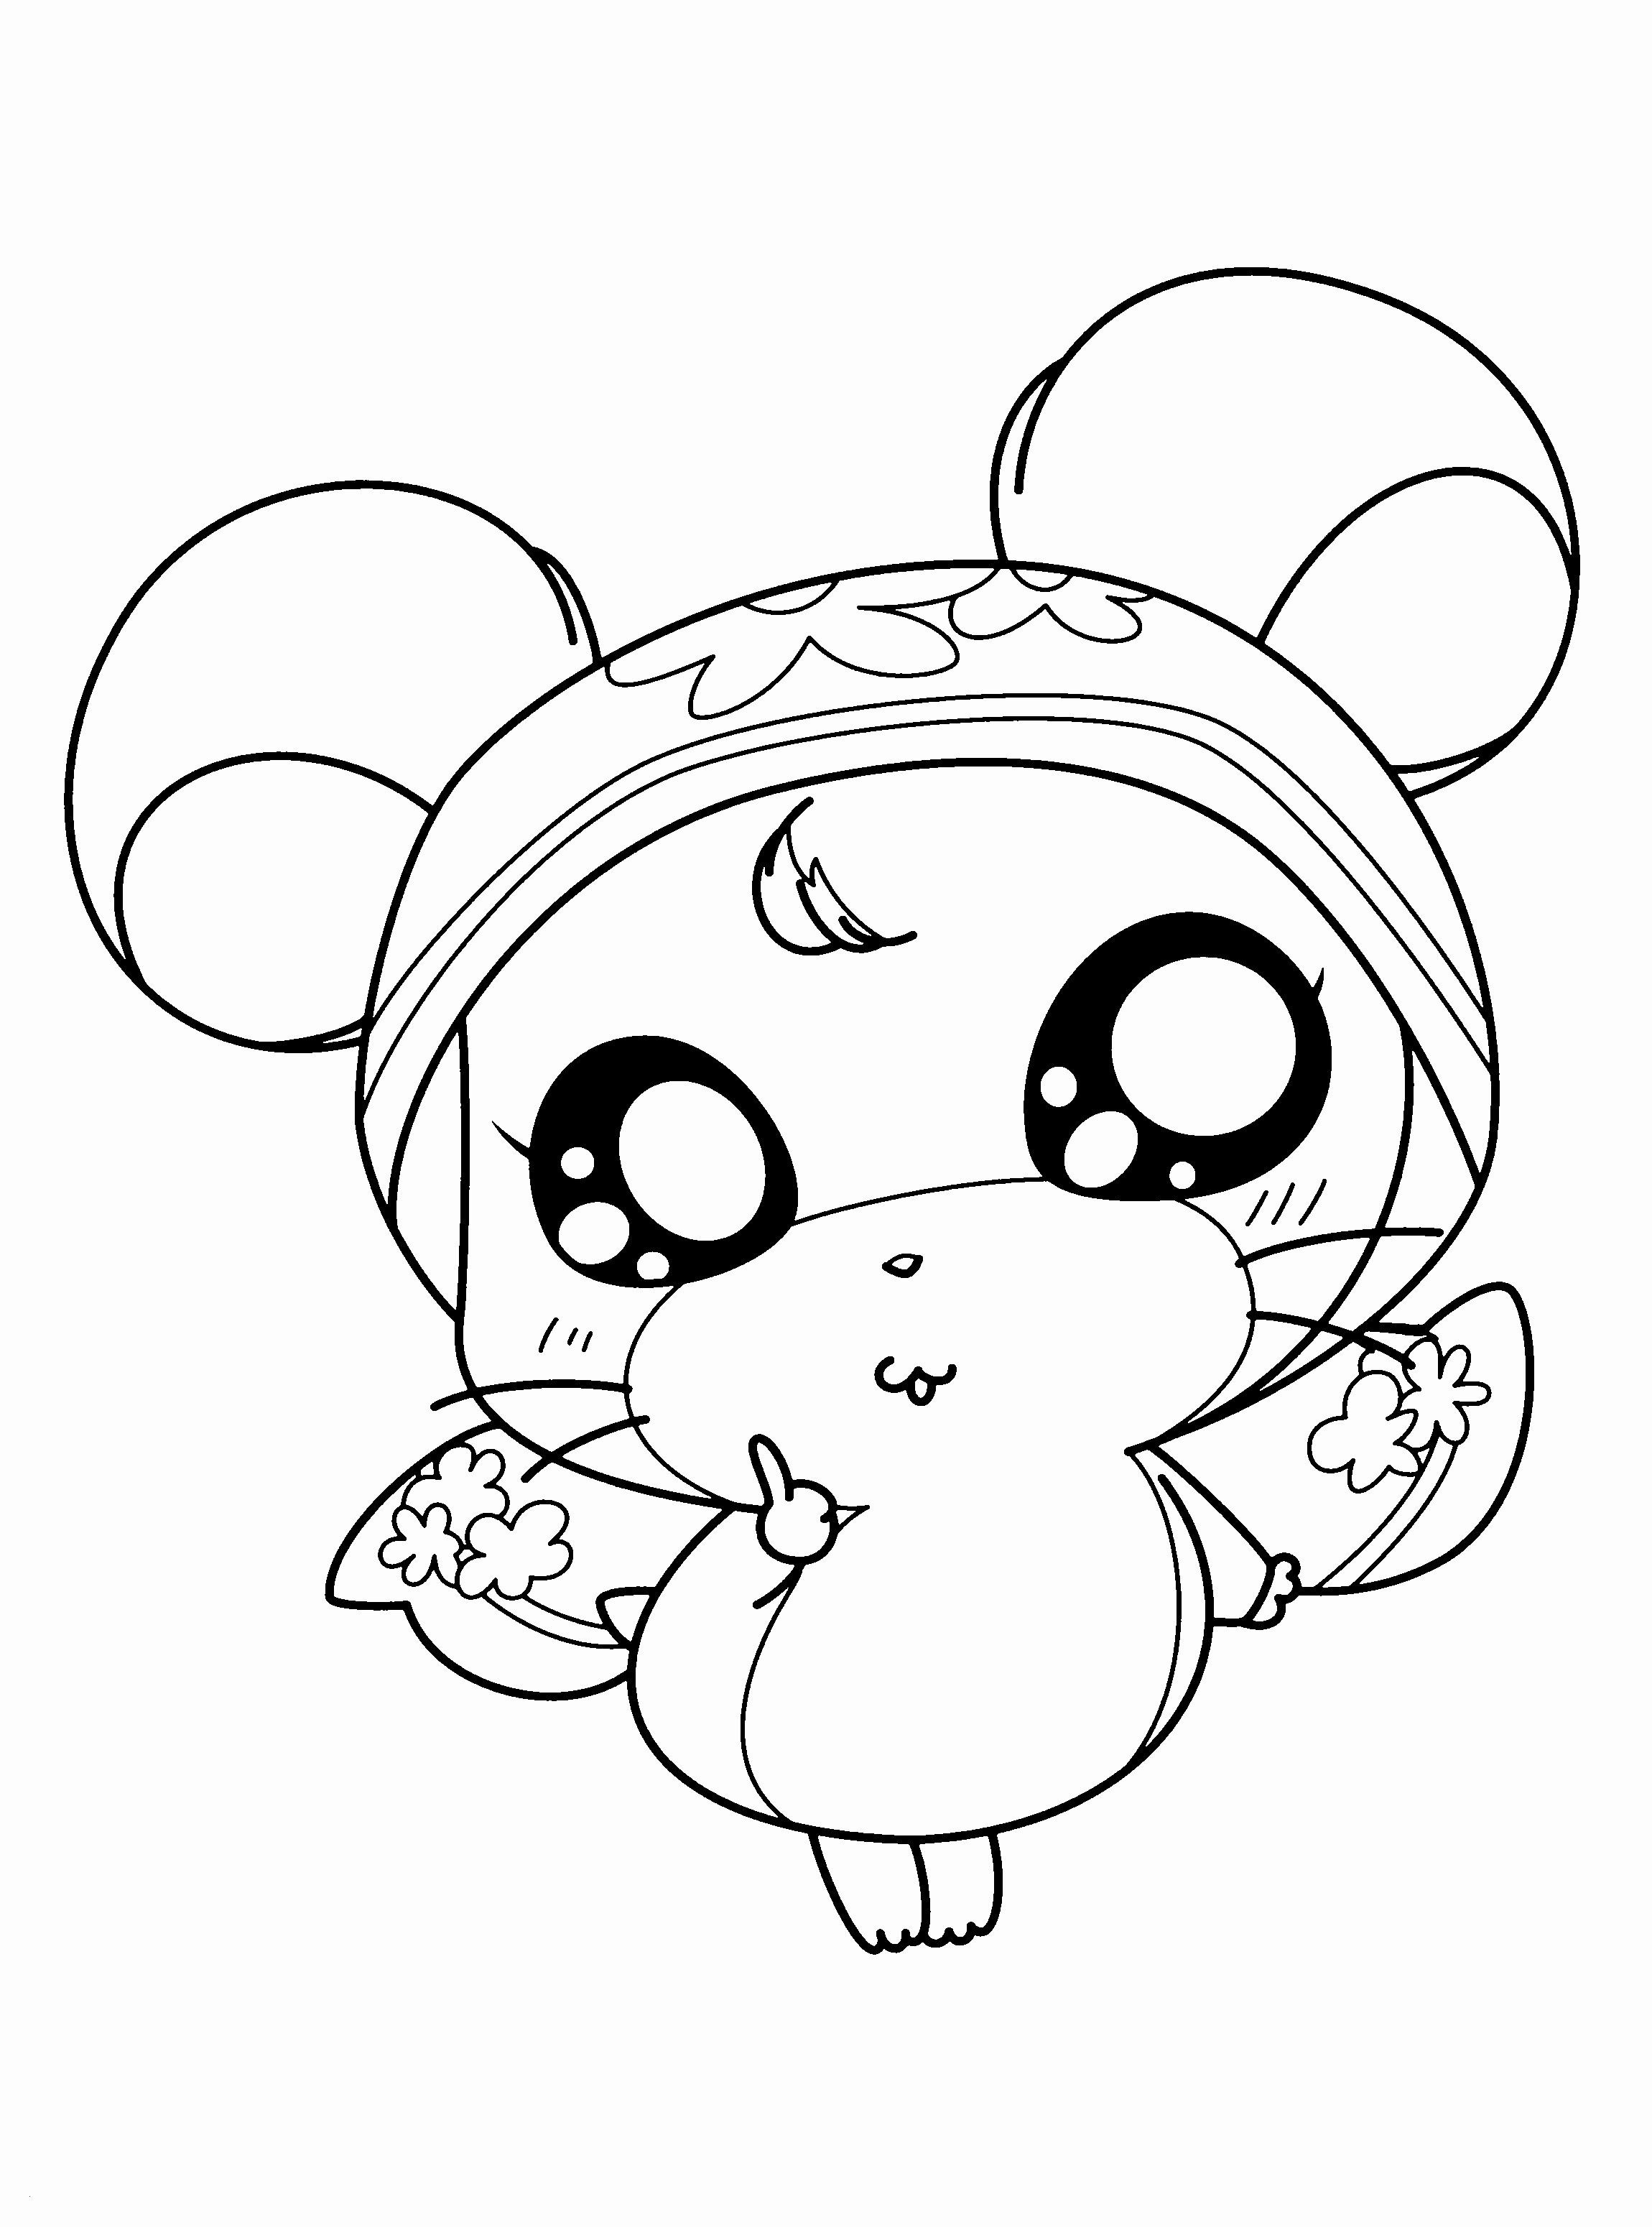 coloring pages for preschoolers Download-Flower Coloring Pages for Preschoolers Kids Flower Coloring Pages Great Cool Coloring Printables 0d – Fun 13-p